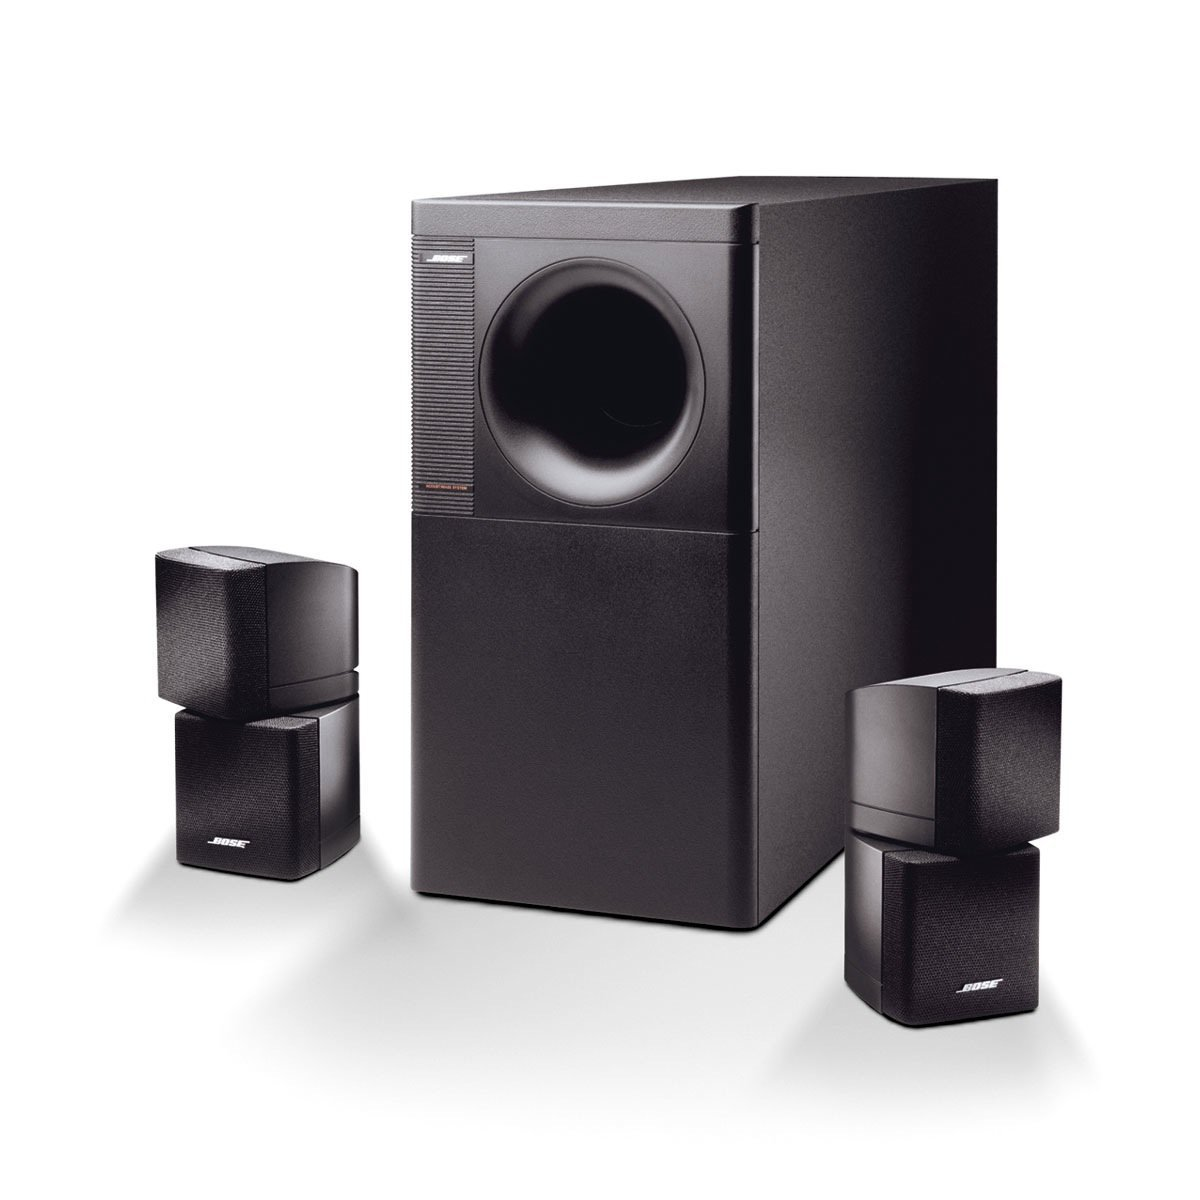 bose acoustimass 3 series speaker system black. Black Bedroom Furniture Sets. Home Design Ideas